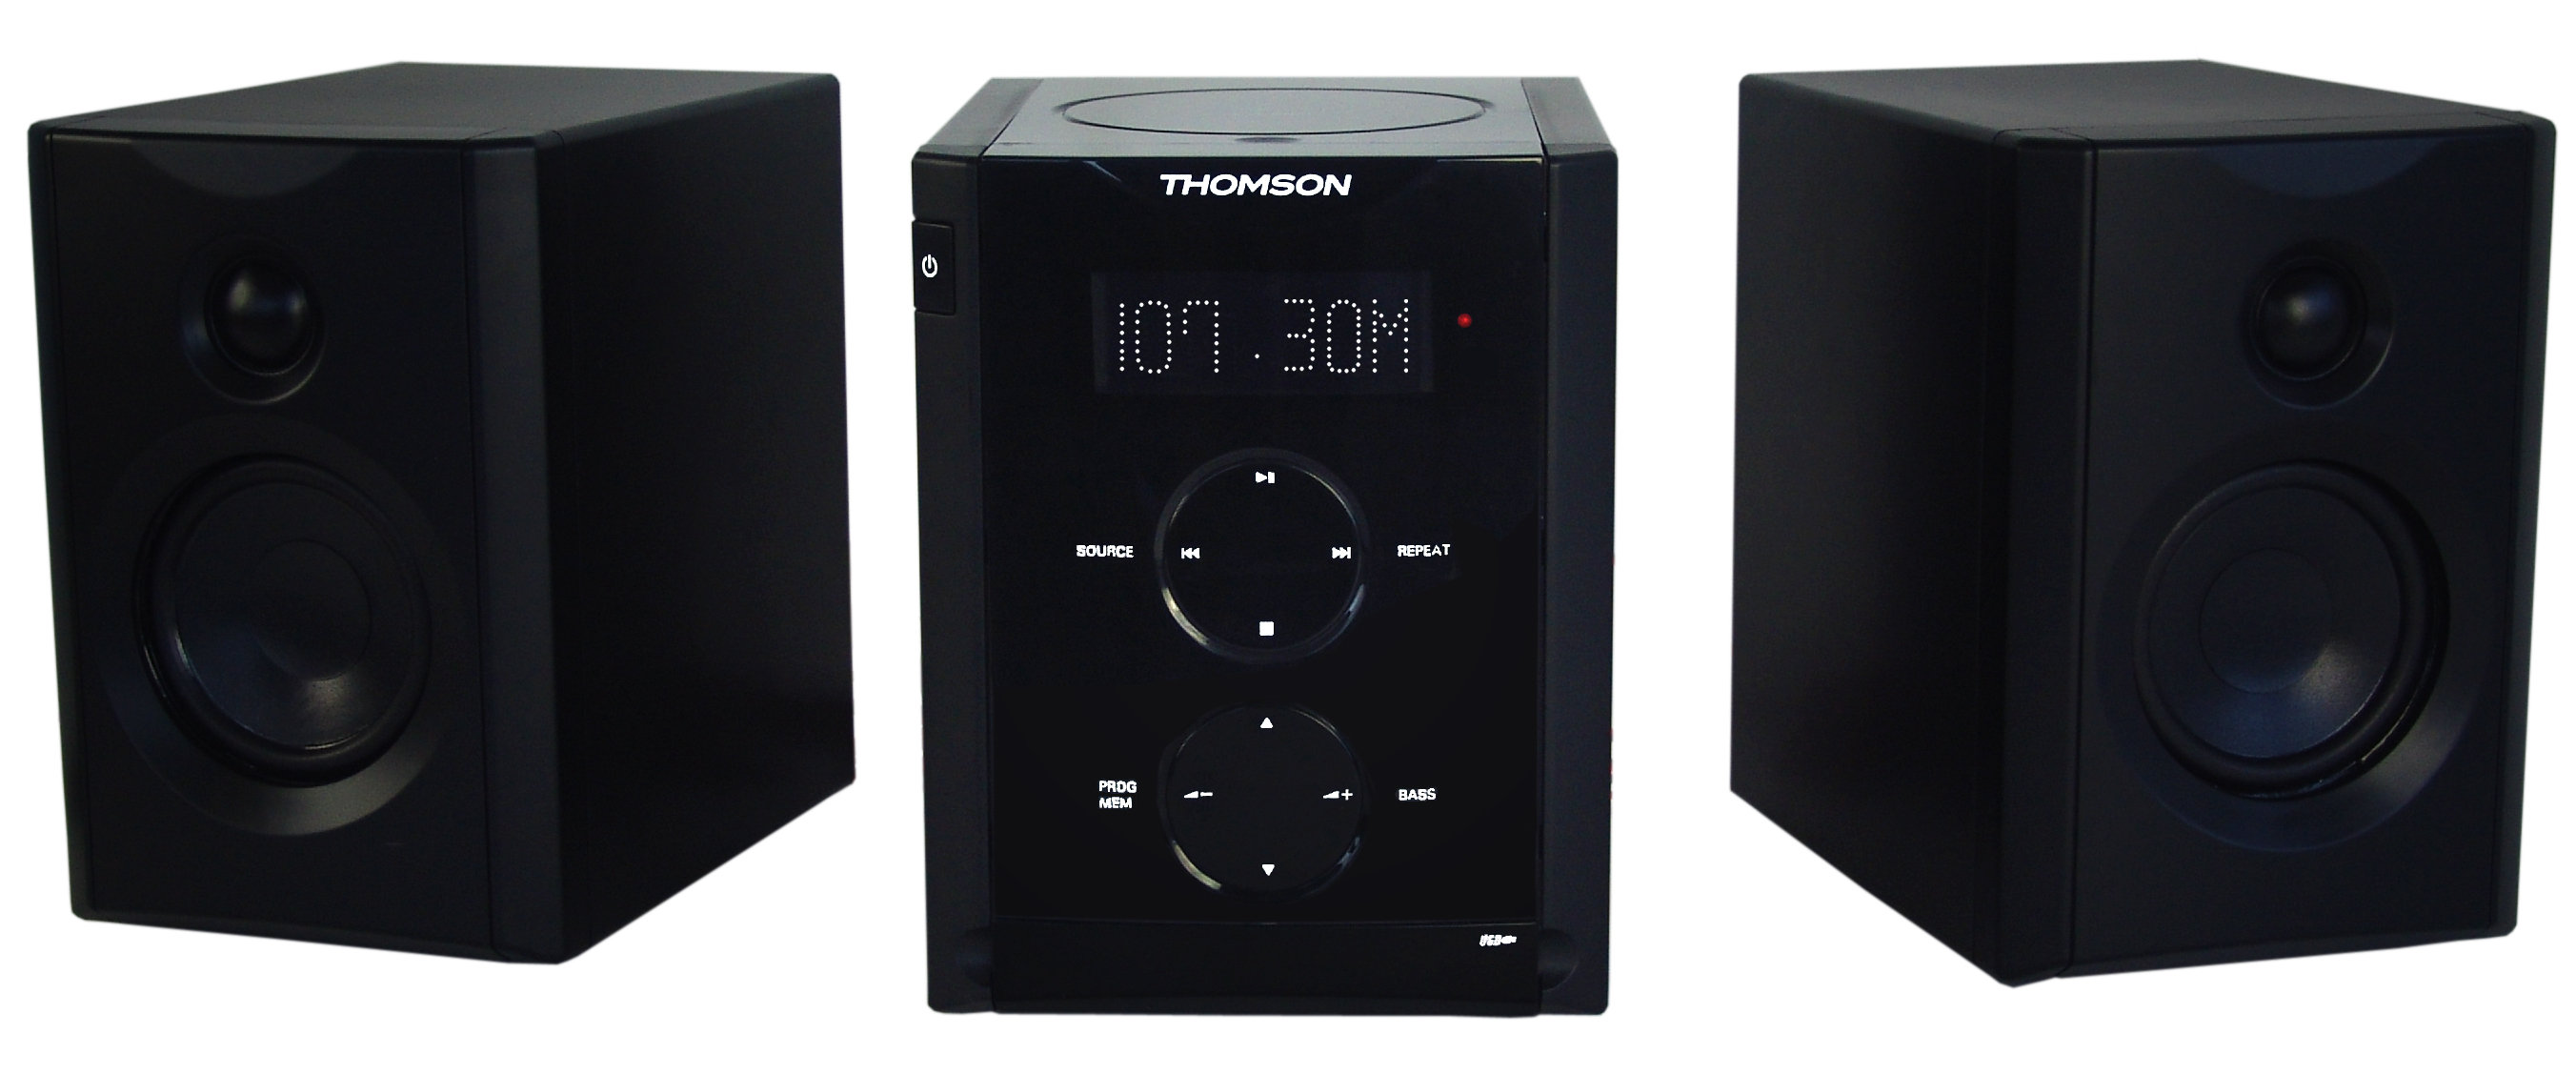 thomson mic 200 impianto stereo con radio orologio mp3 cd. Black Bedroom Furniture Sets. Home Design Ideas